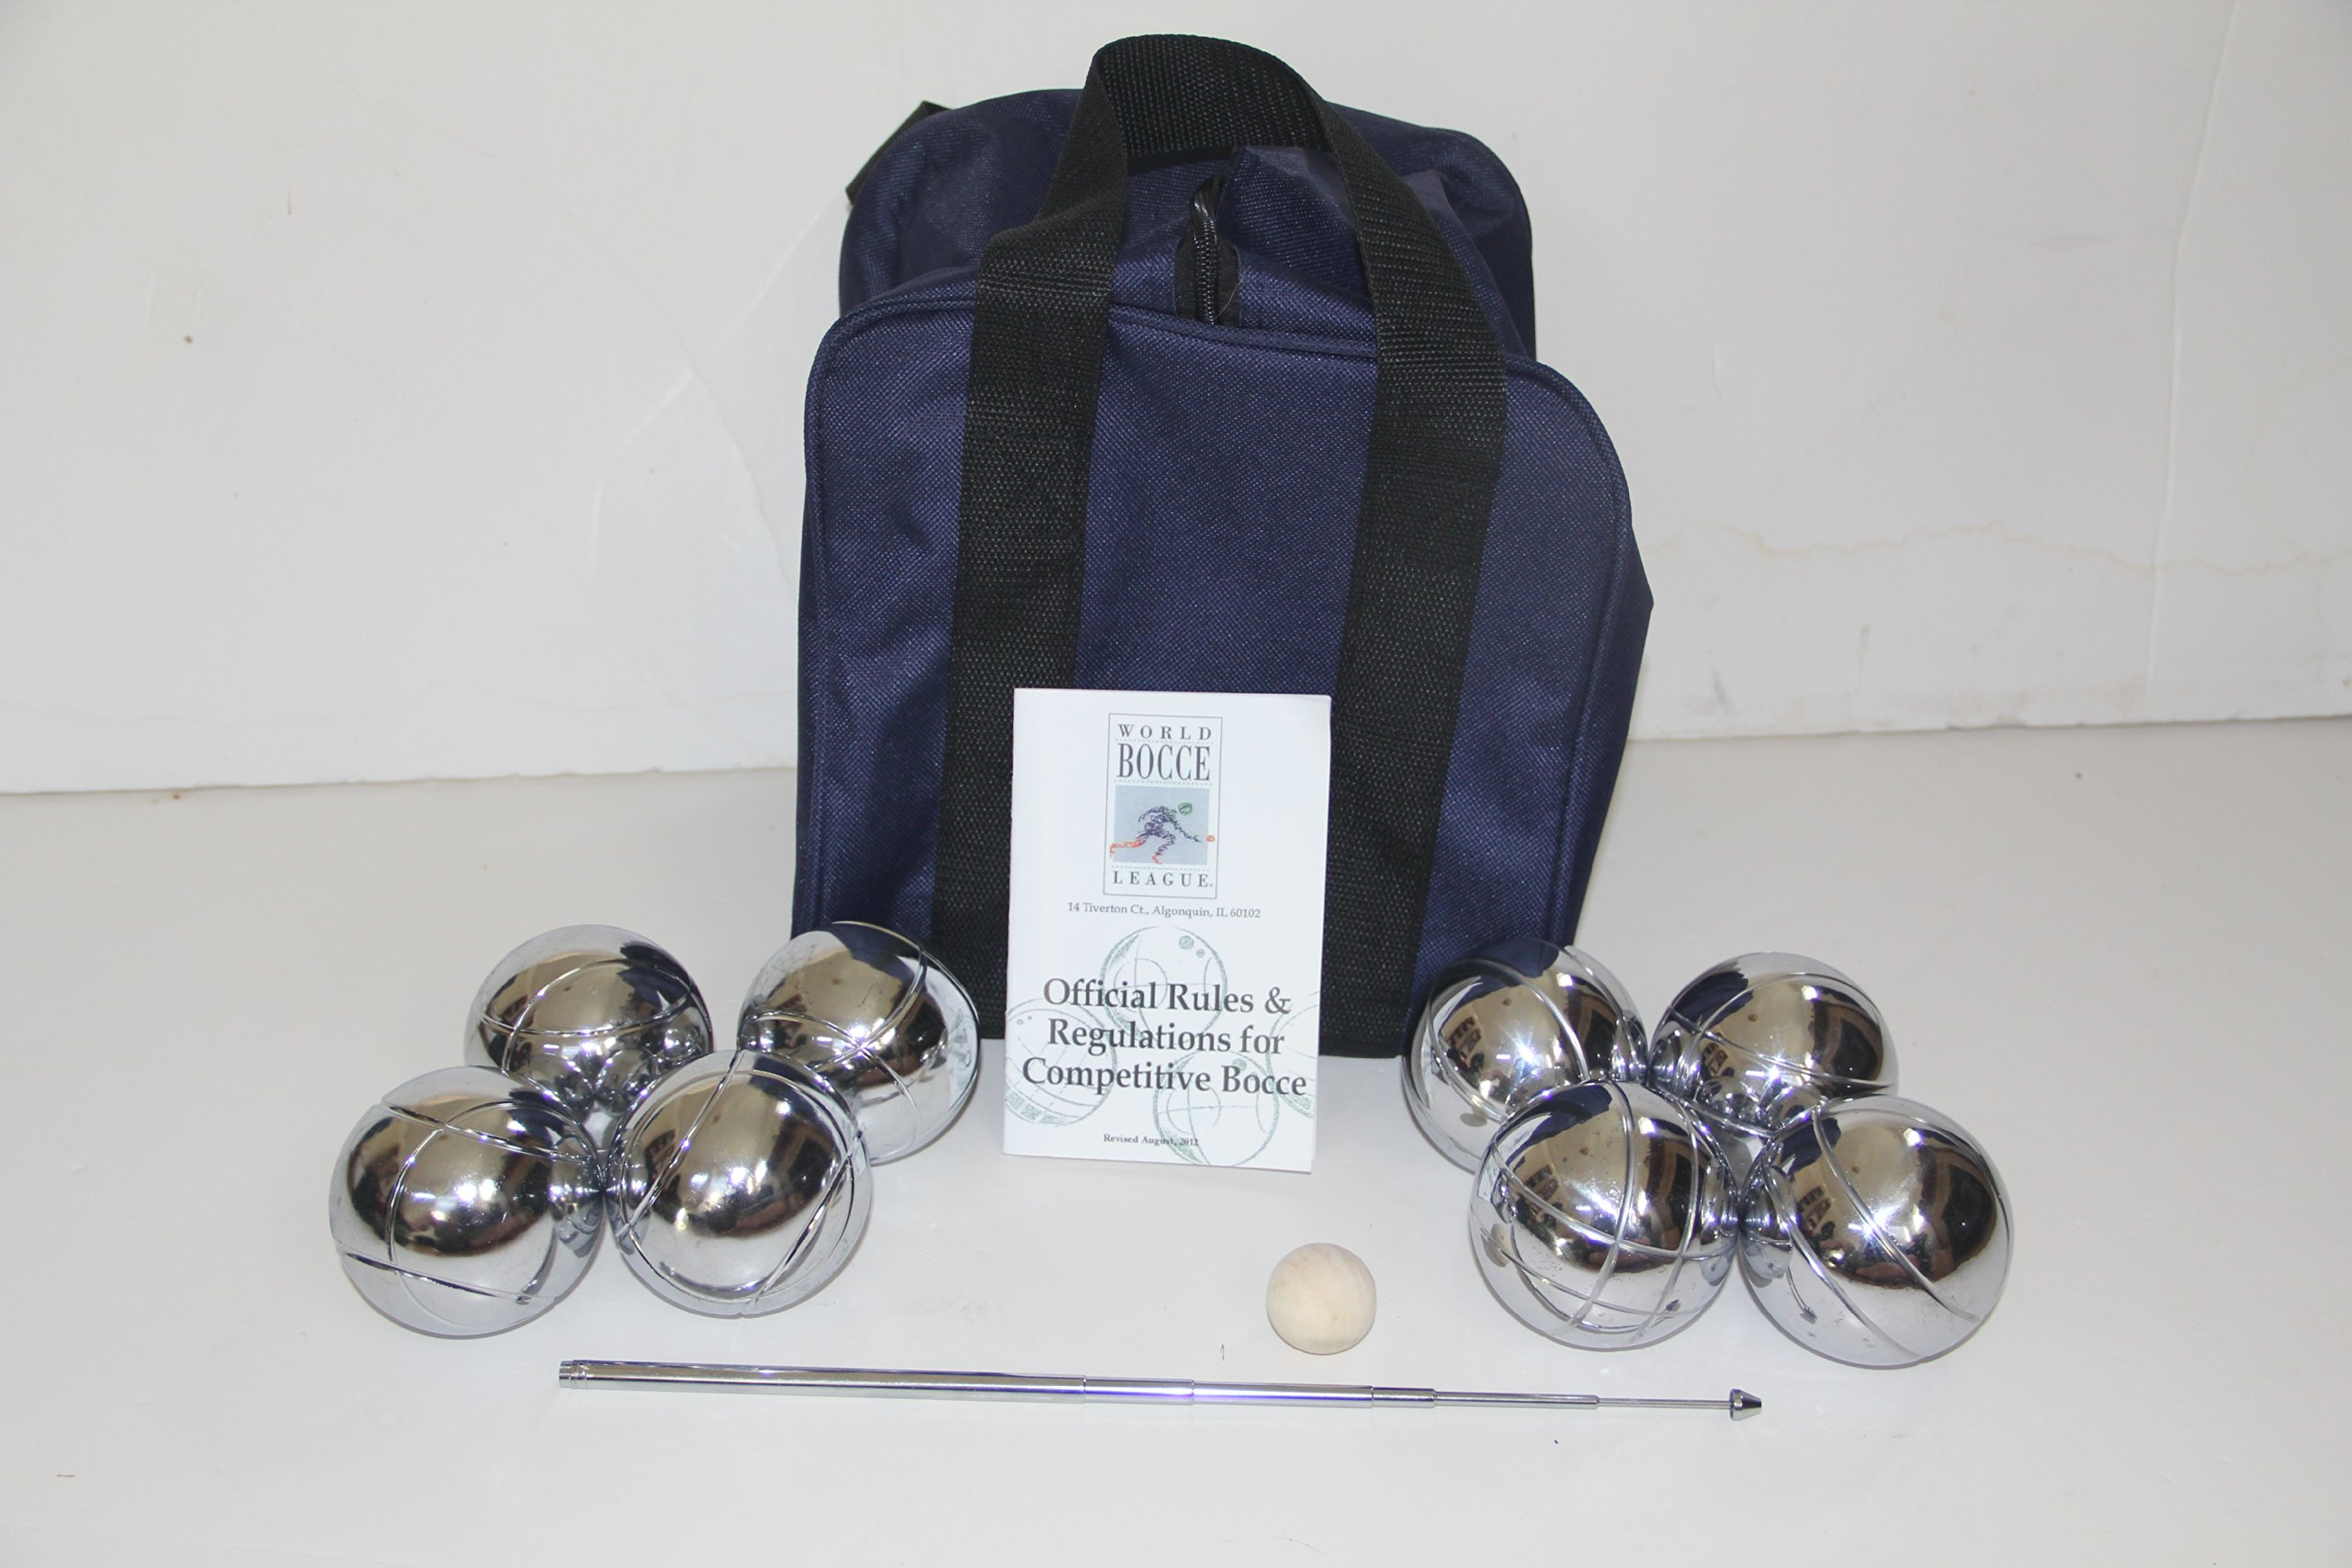 Unique 73mm Petanque/Bocce Pack - with 8 Silver Balls, blue nylon case, rule book and extendable measuring device